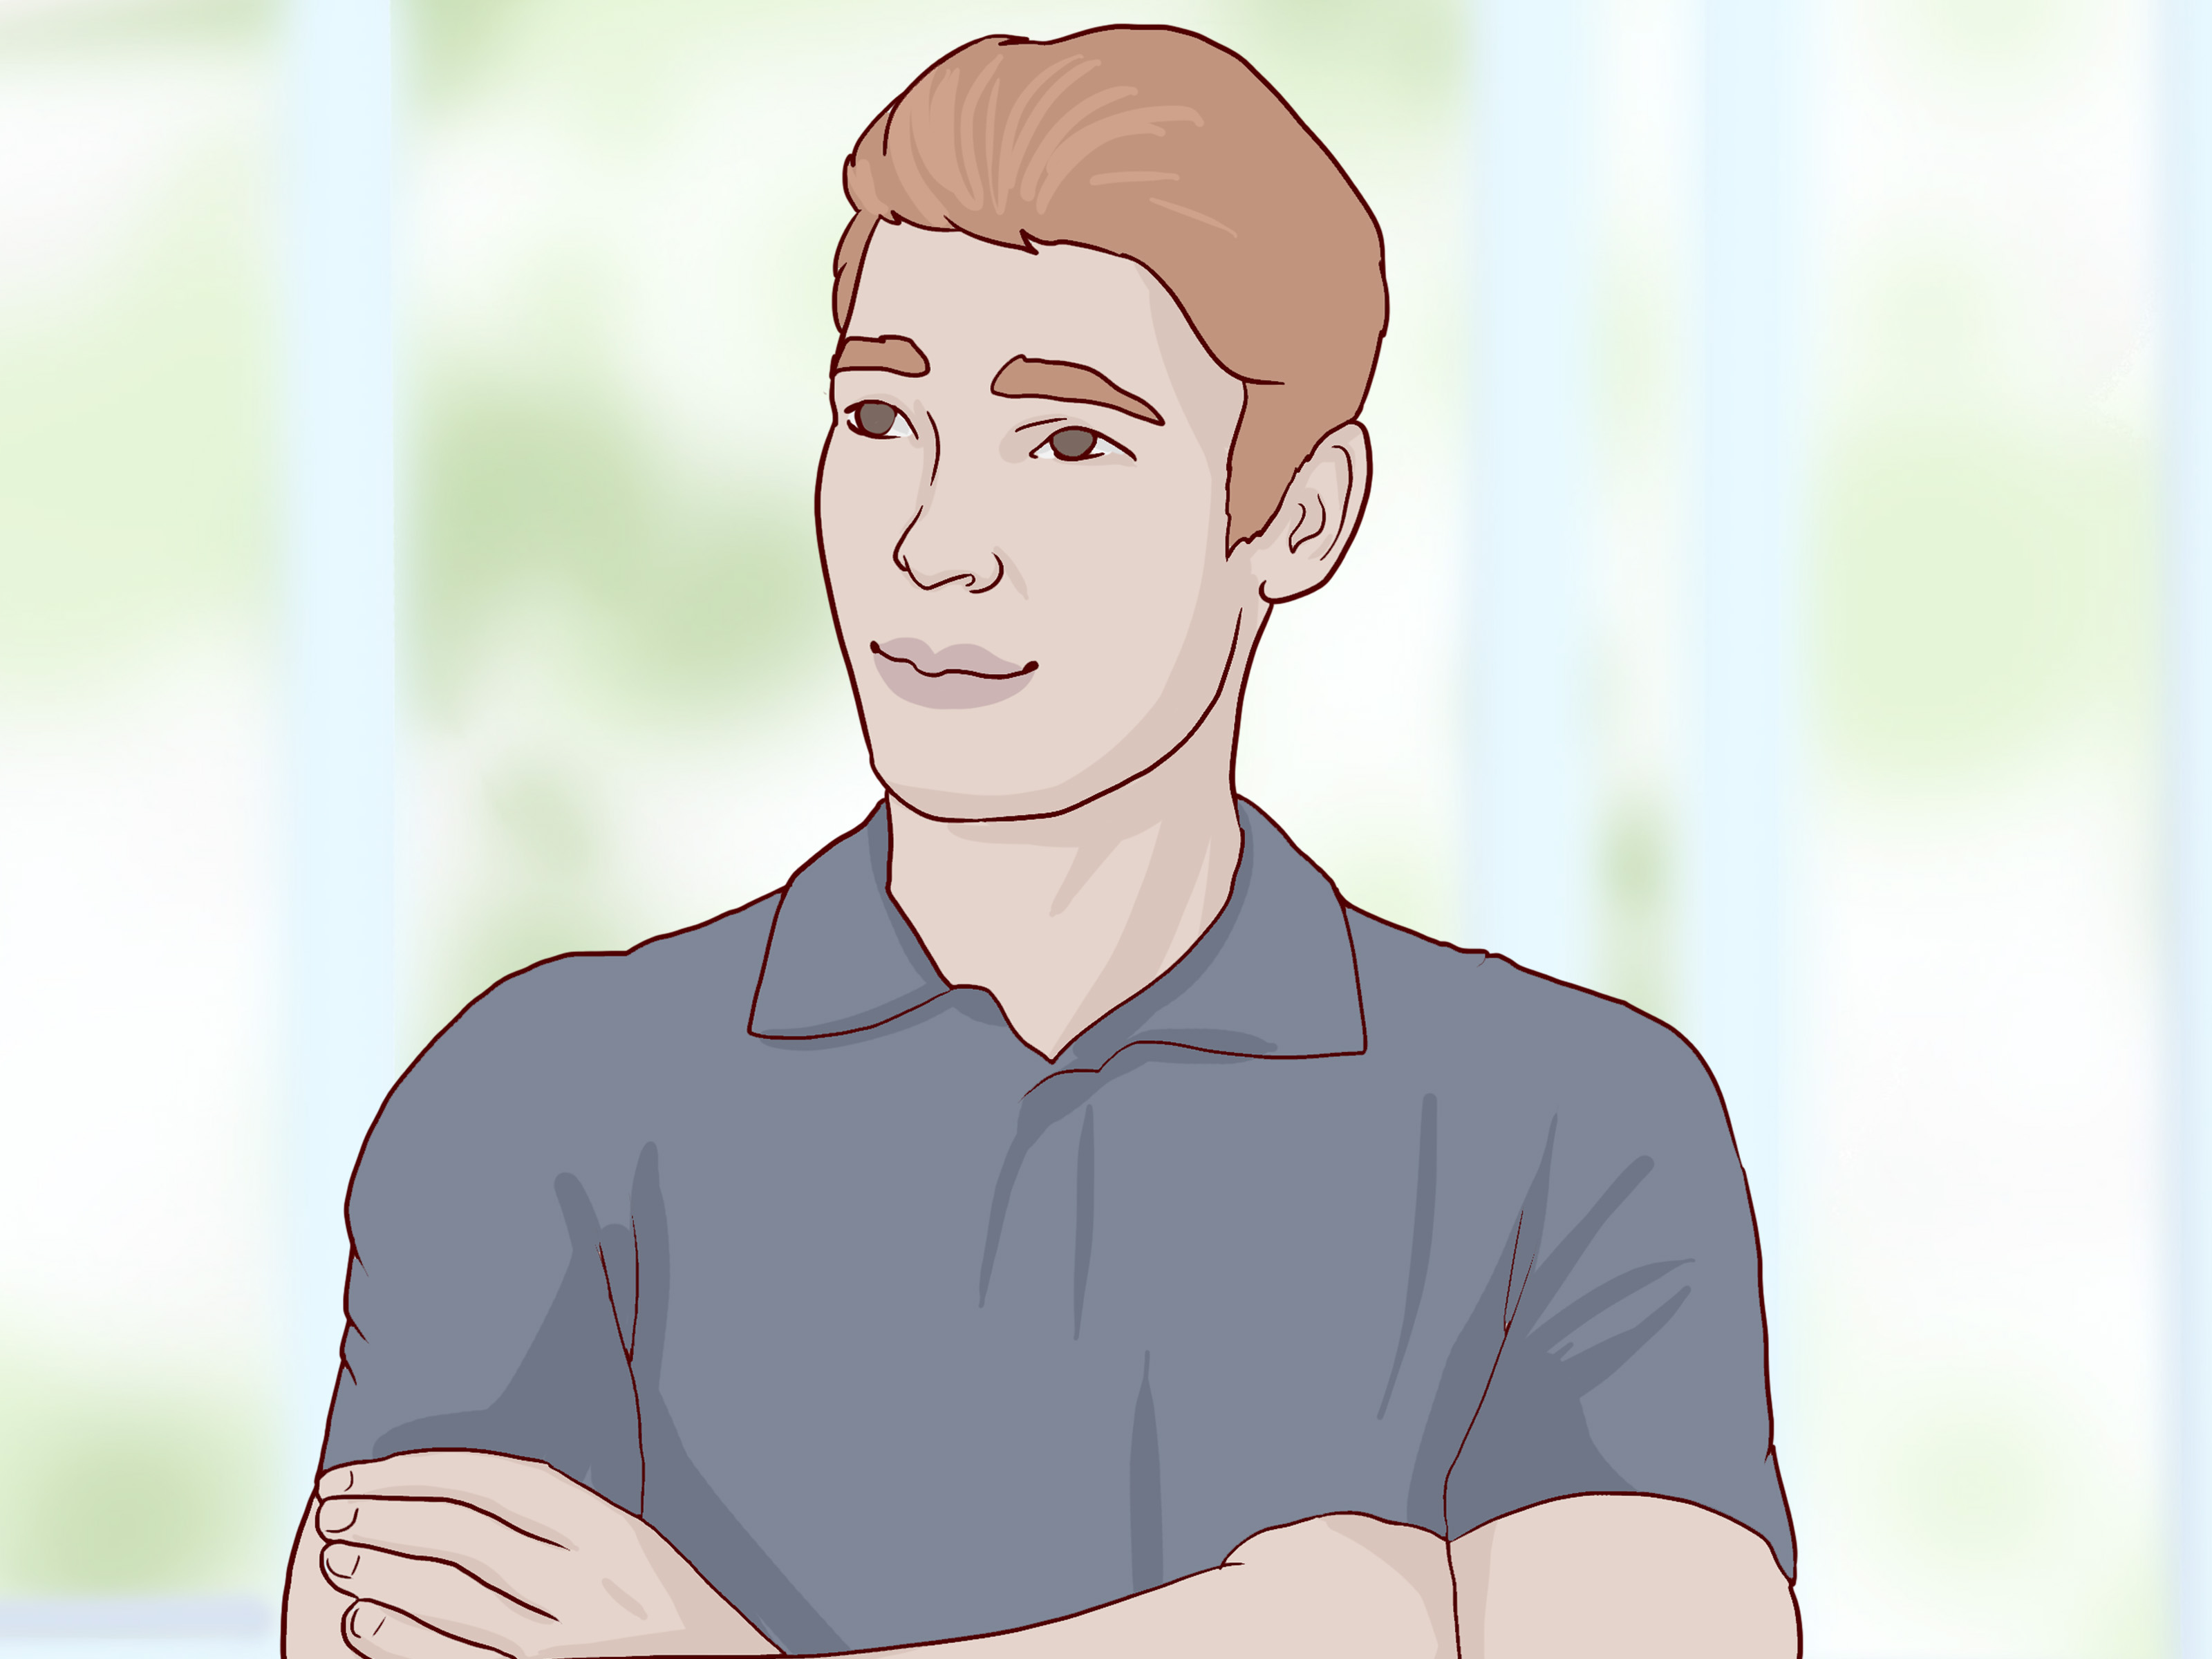 Grand How To Pose Like A Male Steps Wikihow Male Model Poses Male Model Poses Photoshoot dpreview Male Model Pose